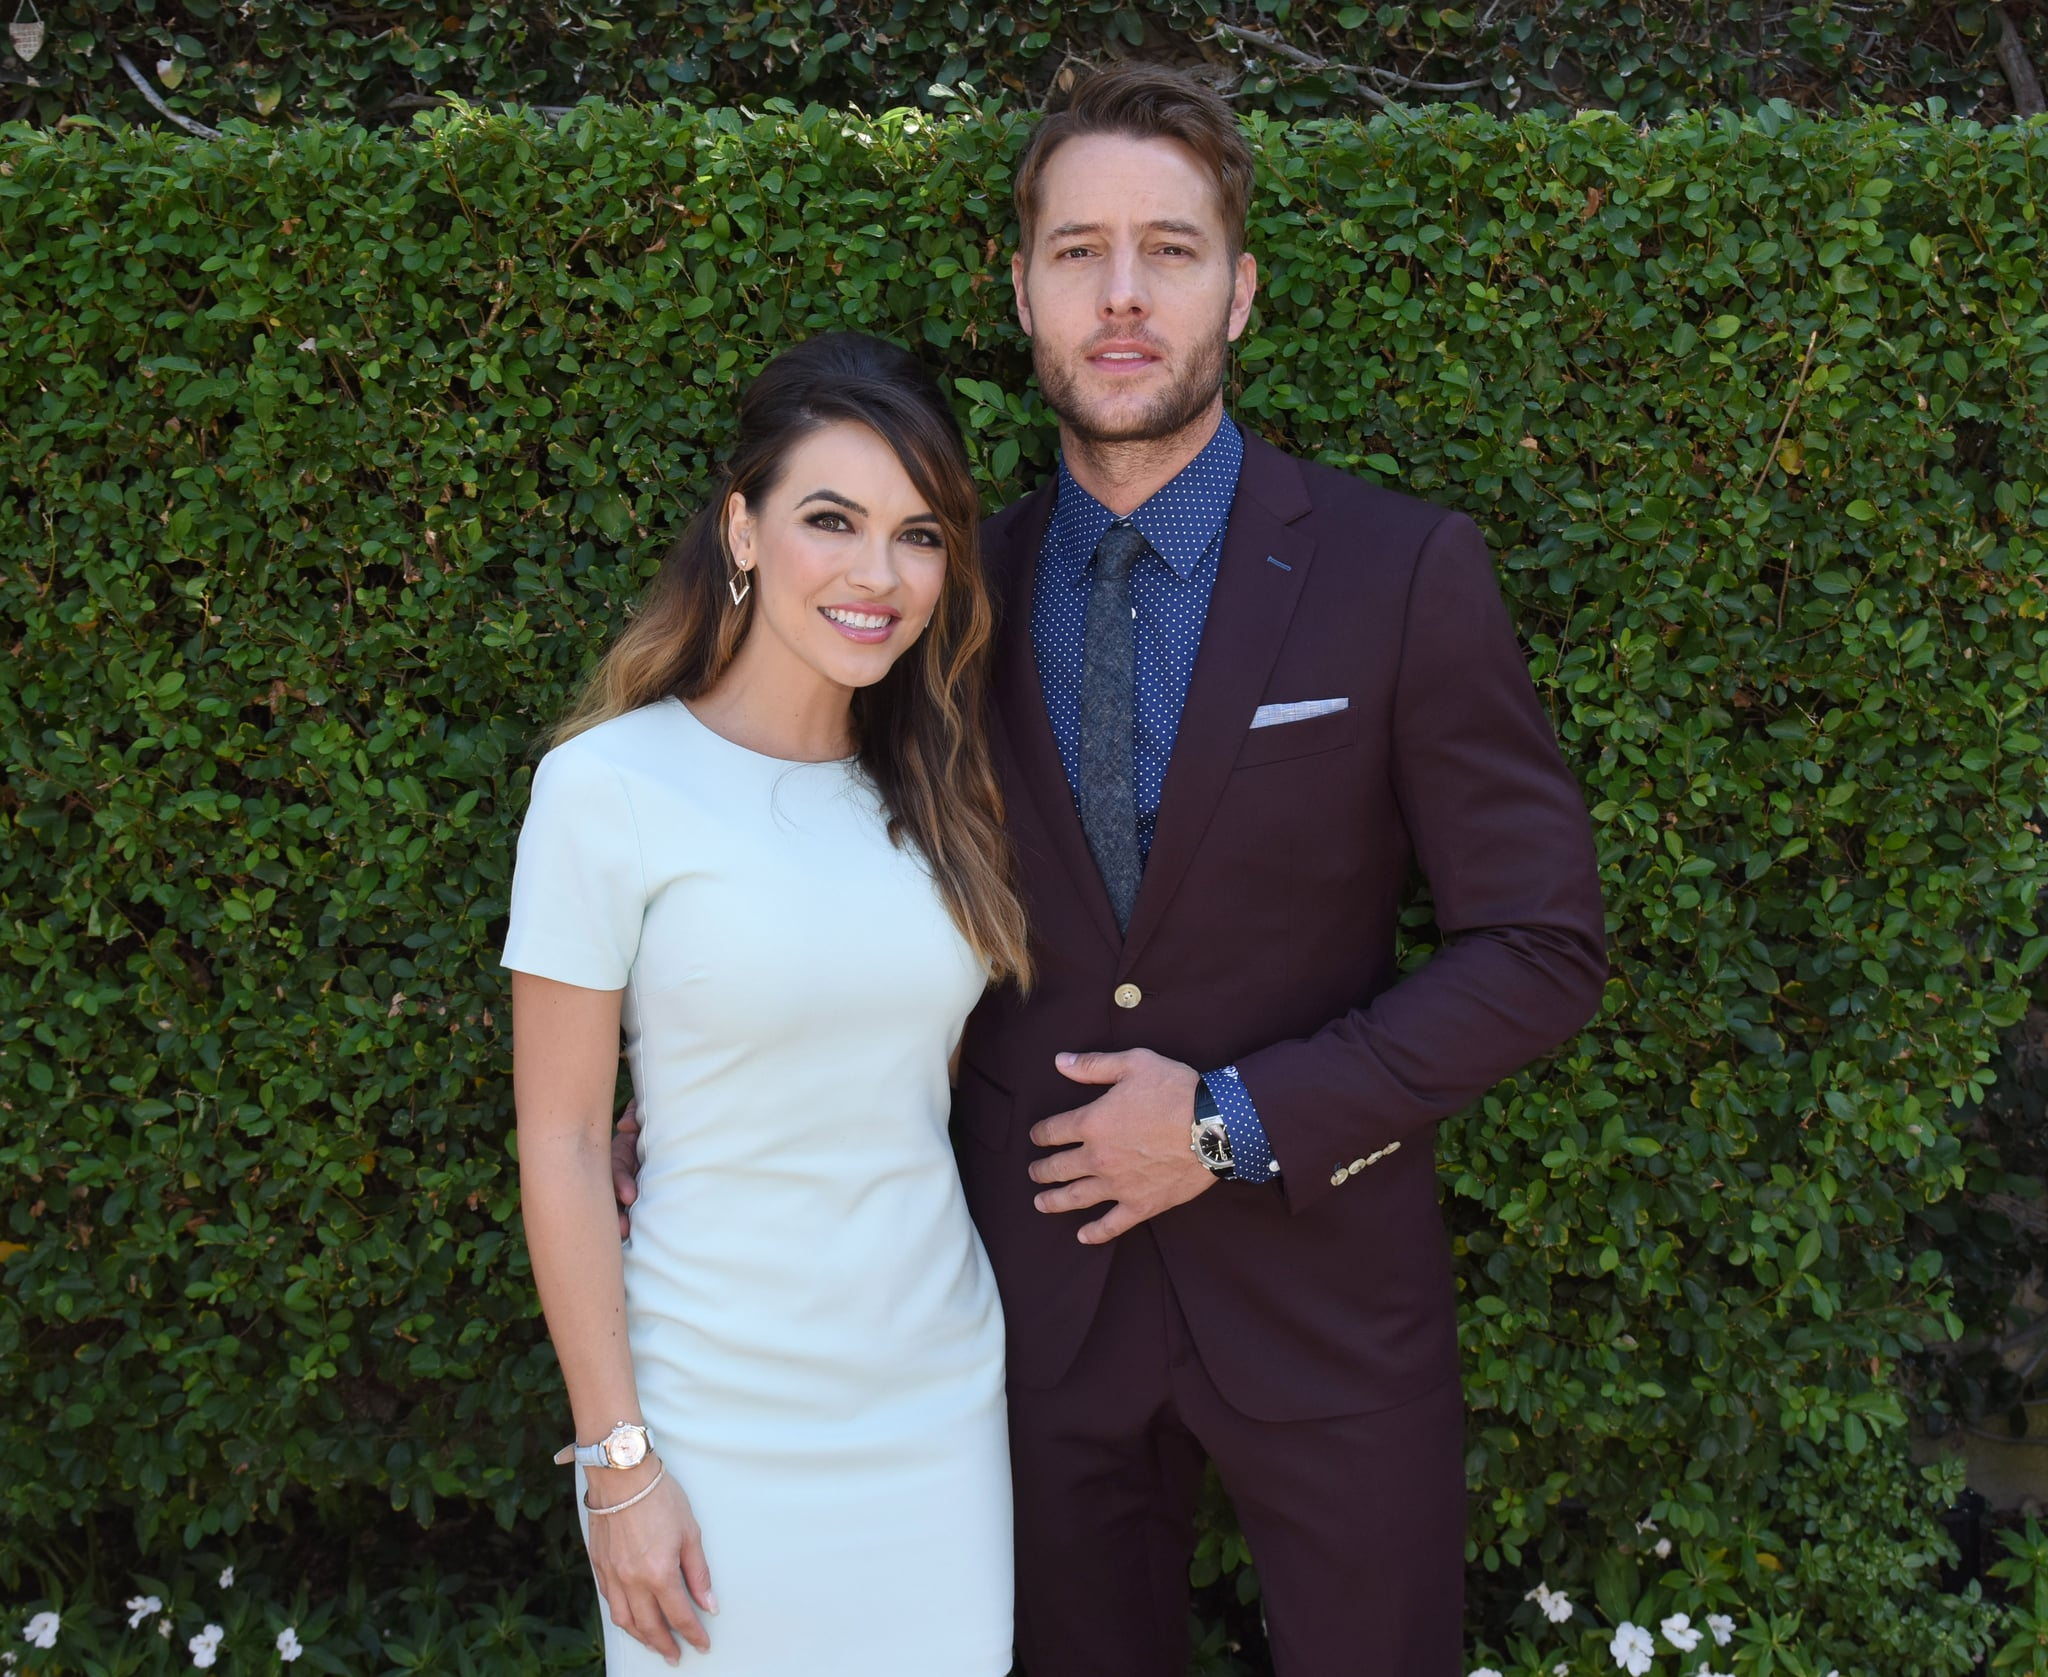 Justin Hartley and actress Chrishell Stause are married